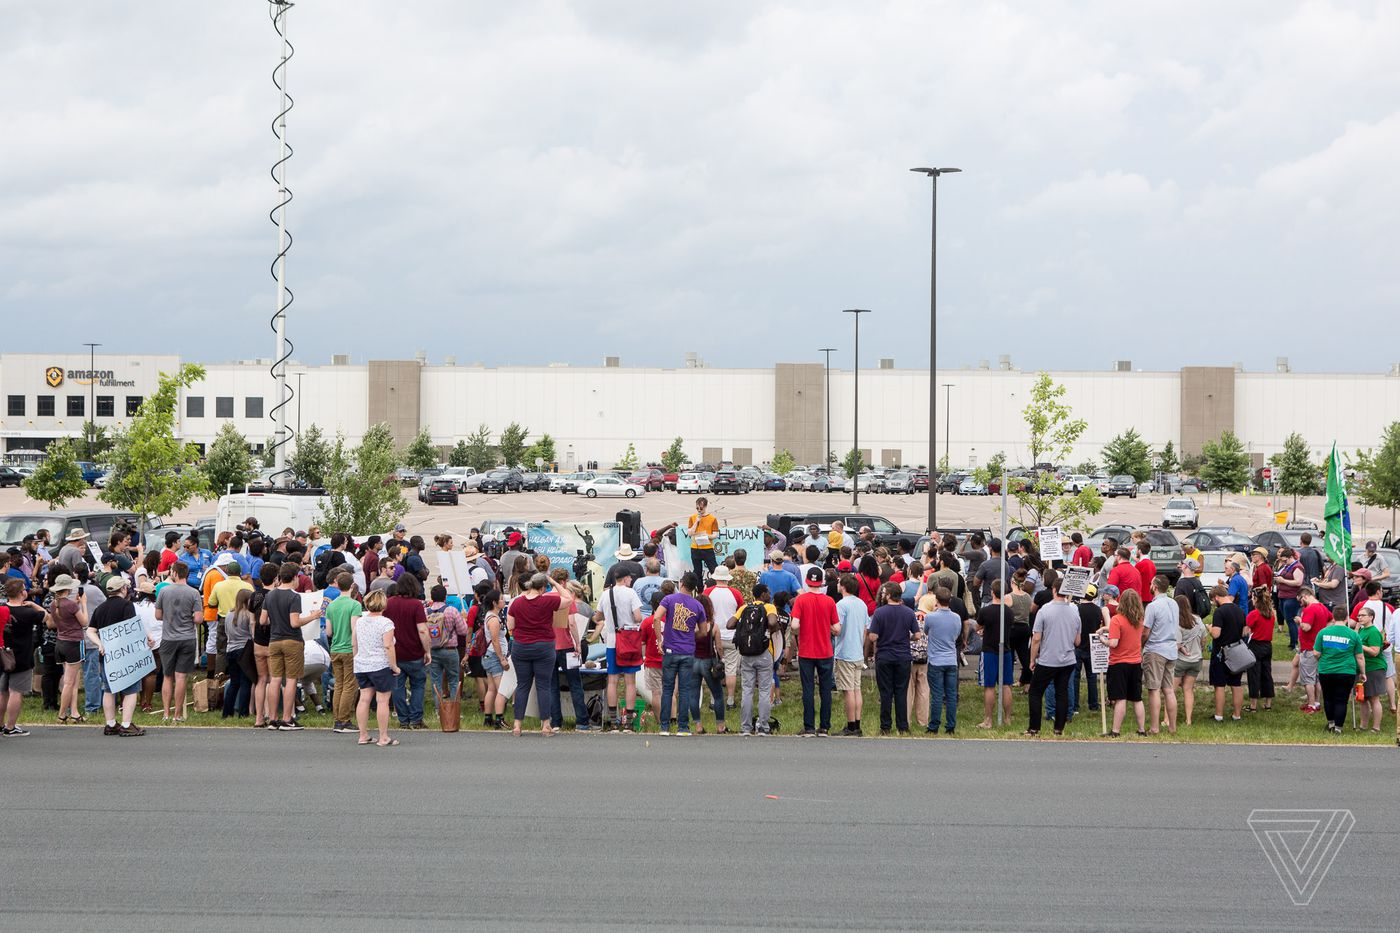 Amazon warehouse workers strike on Prime Day to protest inhumane